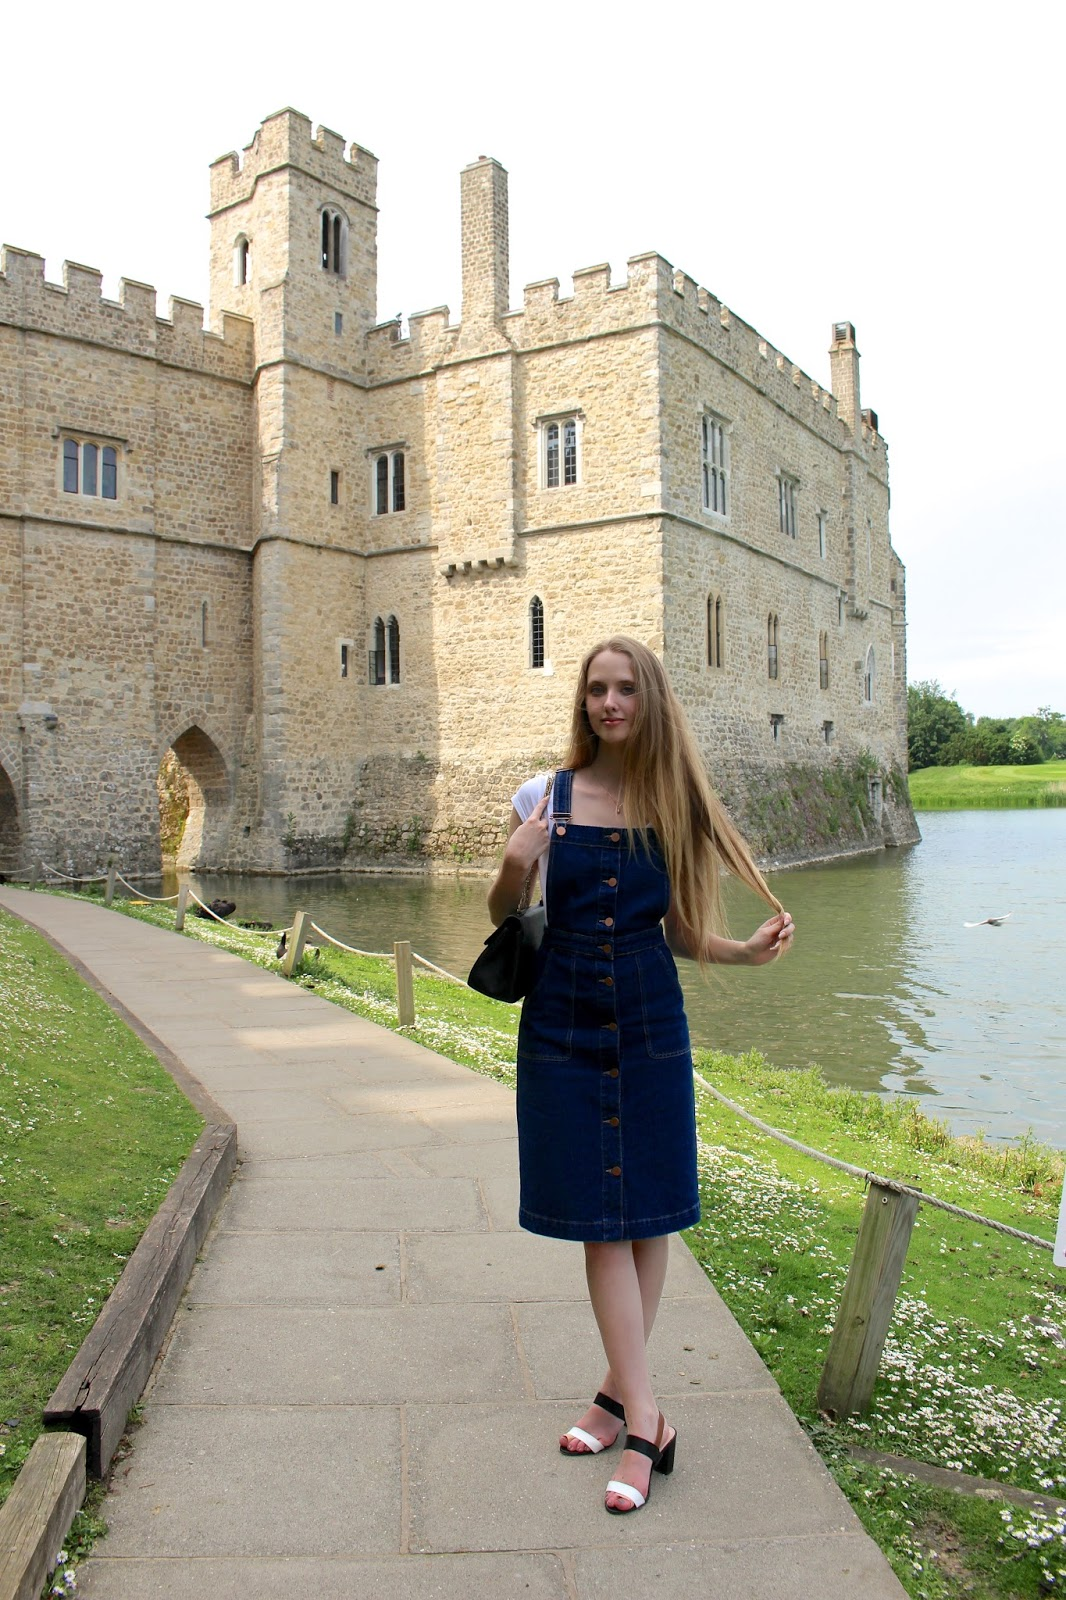 Standing outside Leeds Castle in Kent